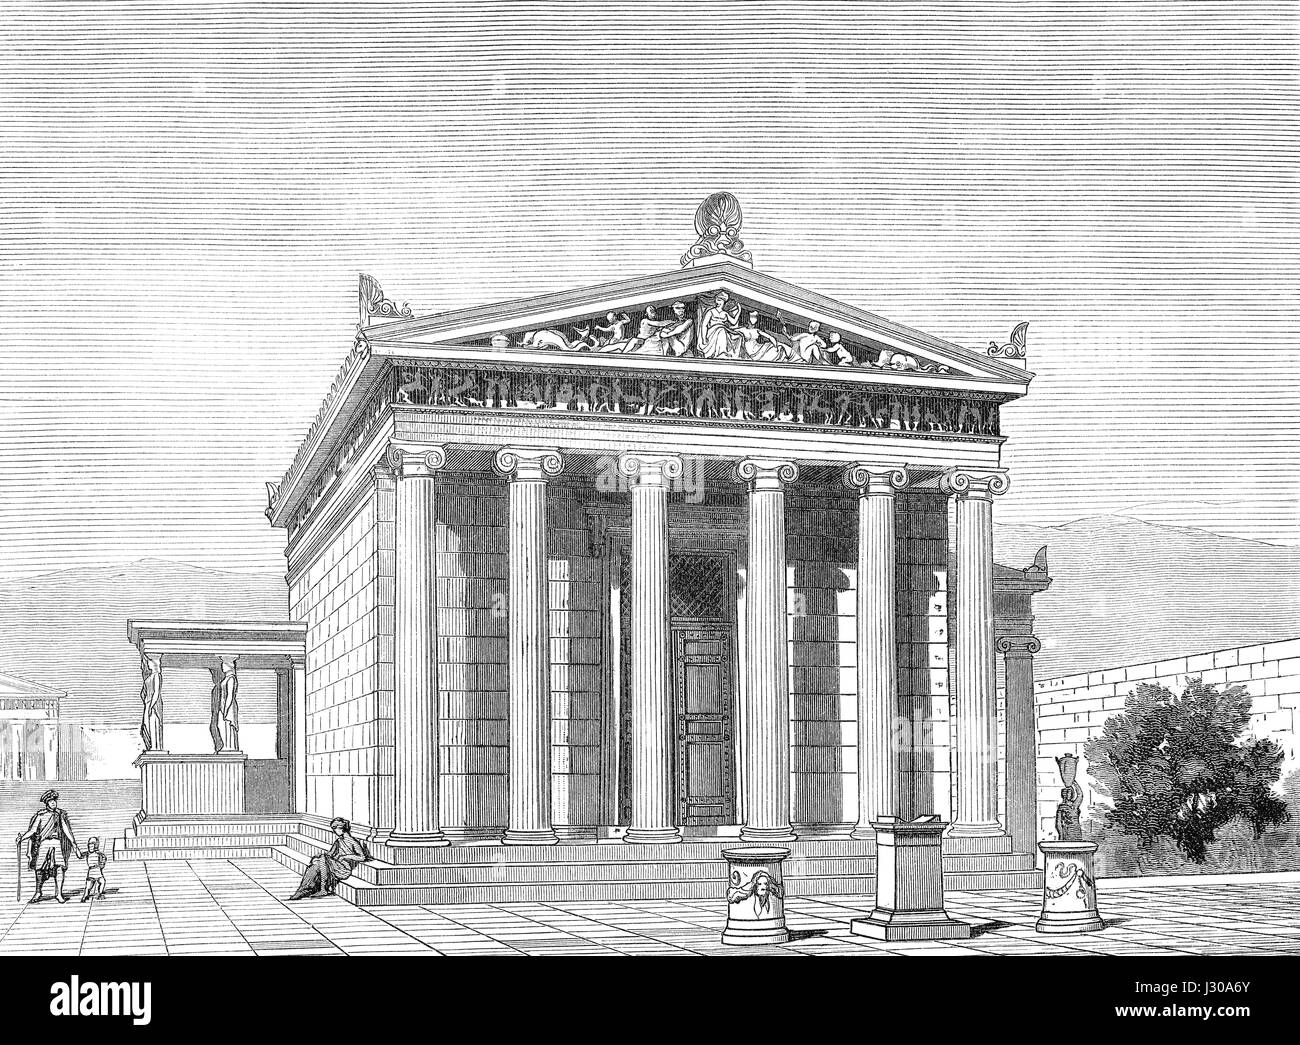 Reconstruction of the Erechtheion or Erechtheum, an ancient Greek temple on the north side of the Acropolis of Athens - Stock Image